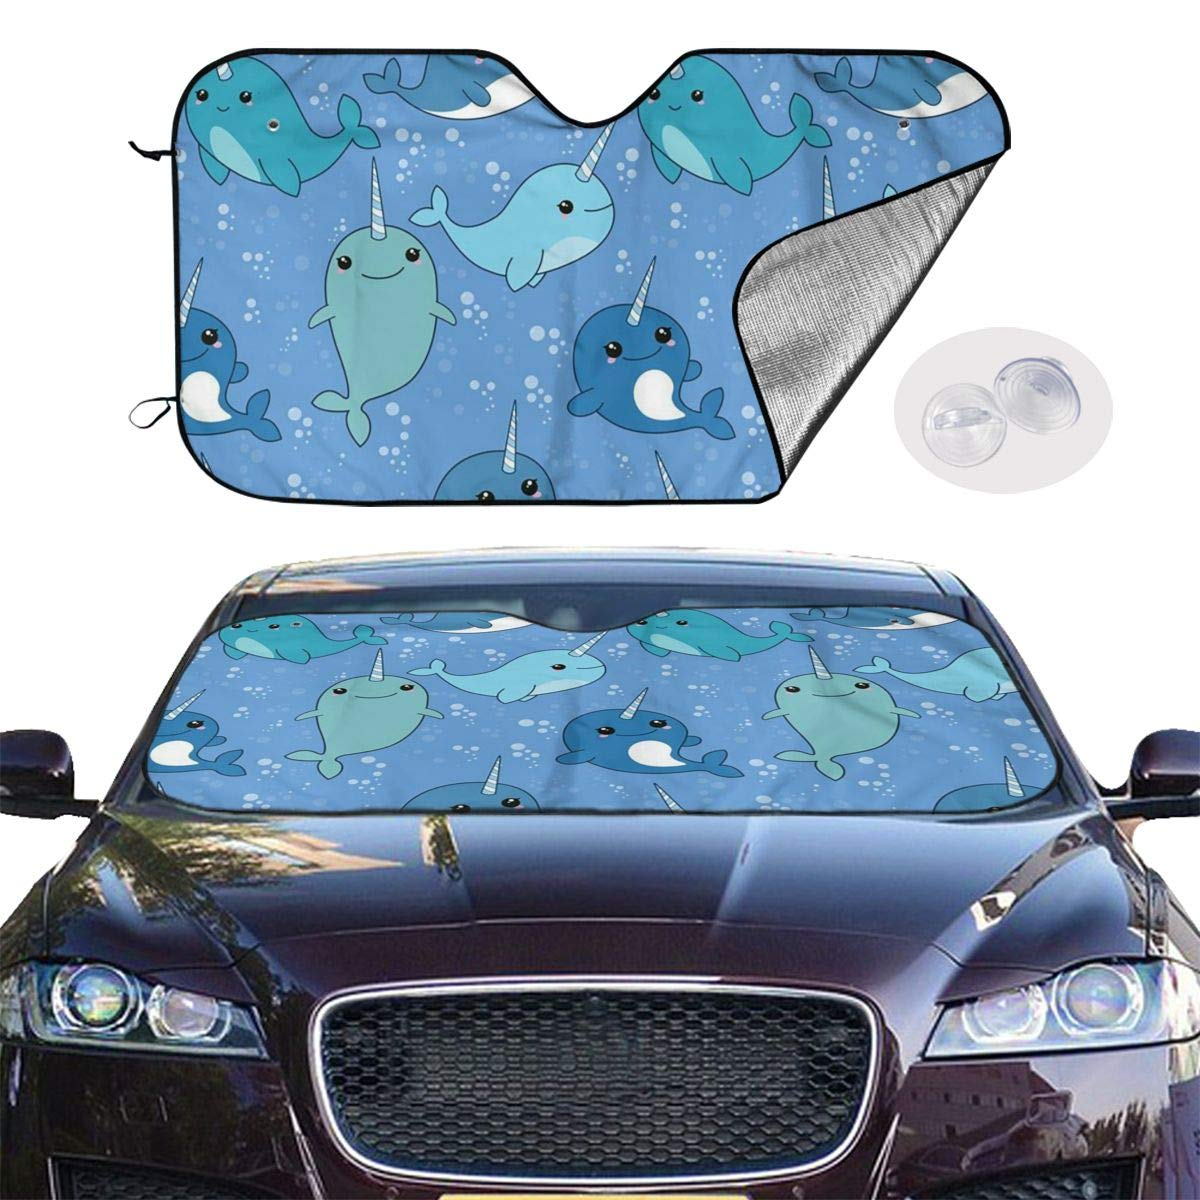 Windshield Sunshade for Car Foldable UV Ray Reflector Auto Front Window Sun Shade Visor Shield Cover, Keeps Vehicle Cool, Cute Narwhal by Sha-de